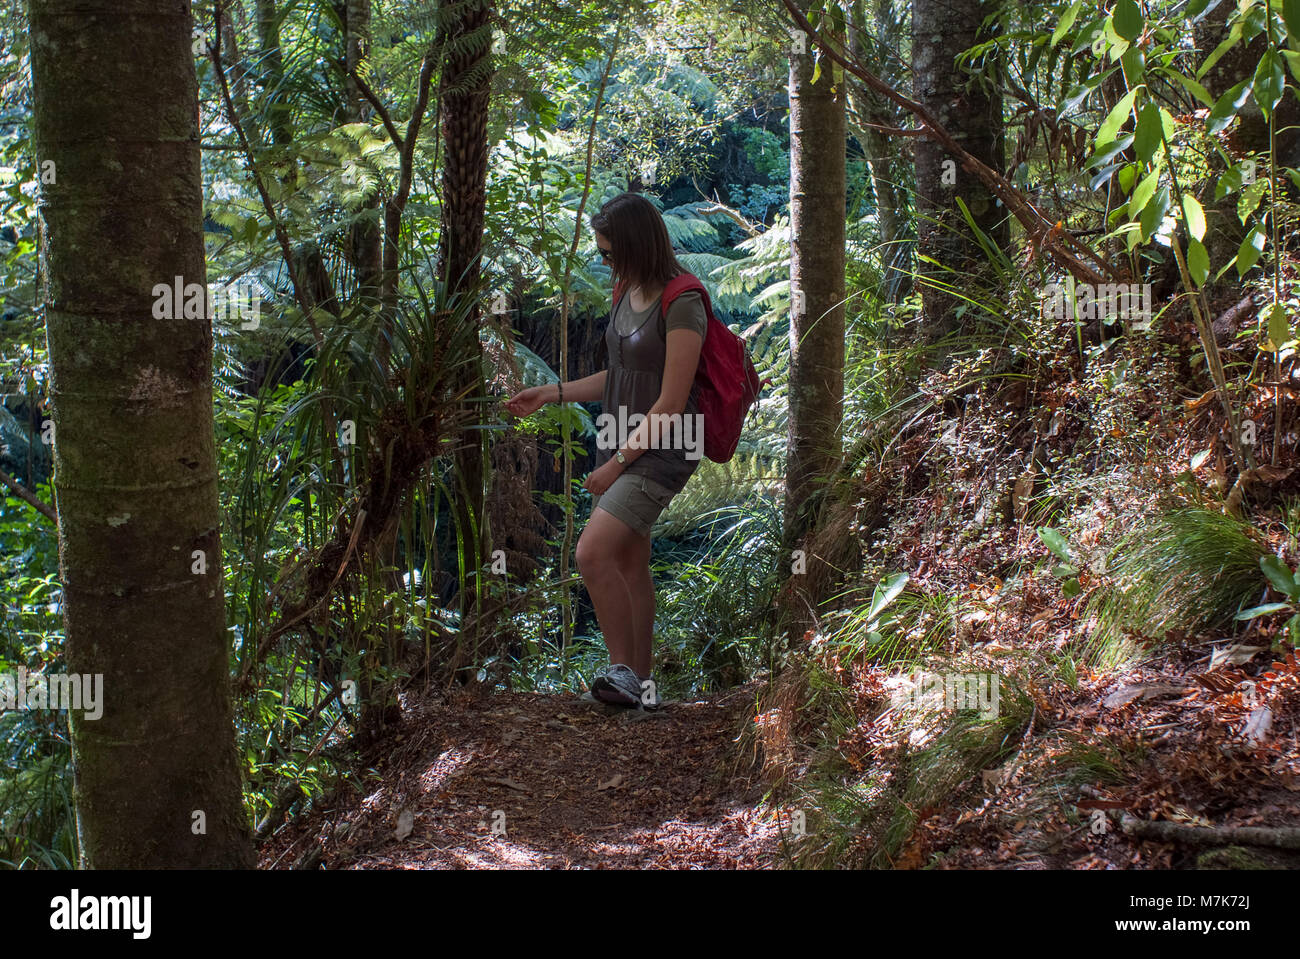 A young woman tramping though Kauri forest stops to examine a plant. - Stock Image